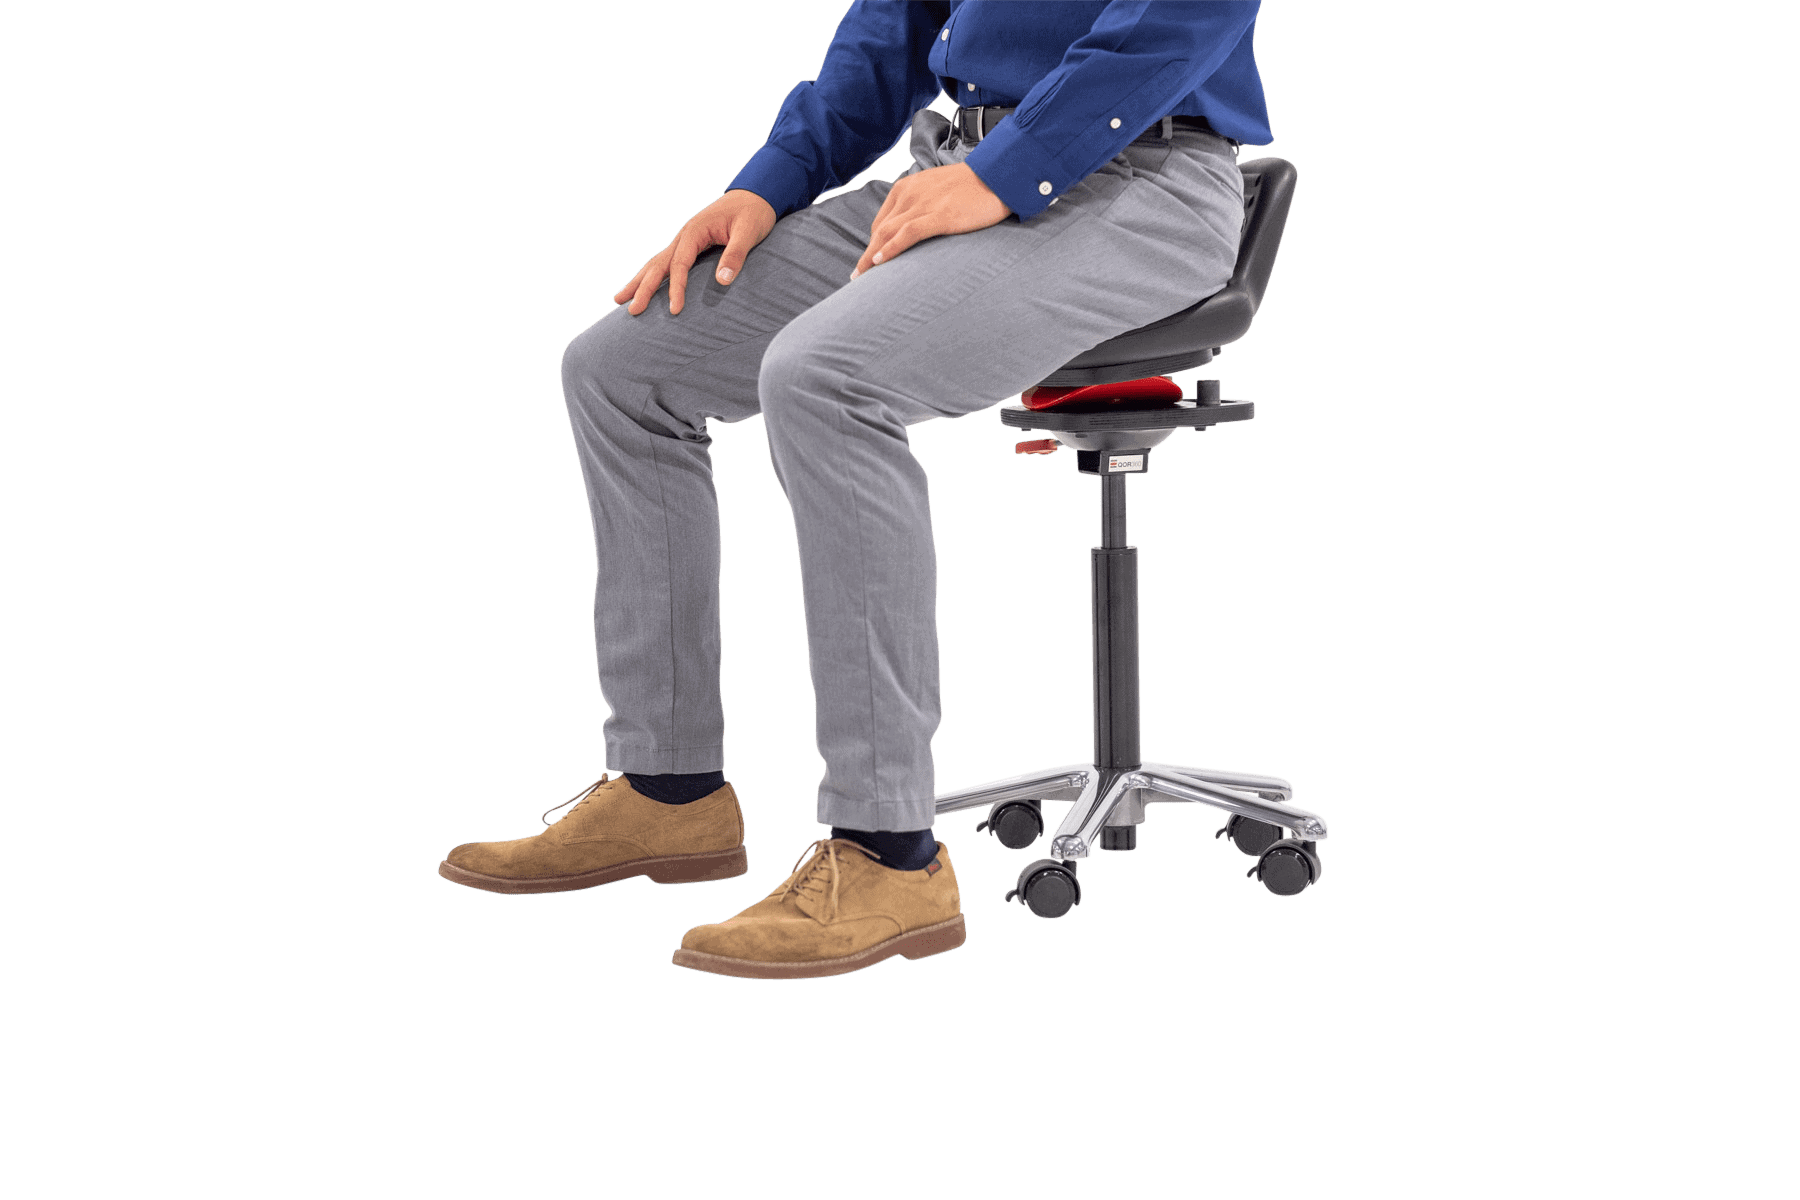 person sitting in active chair